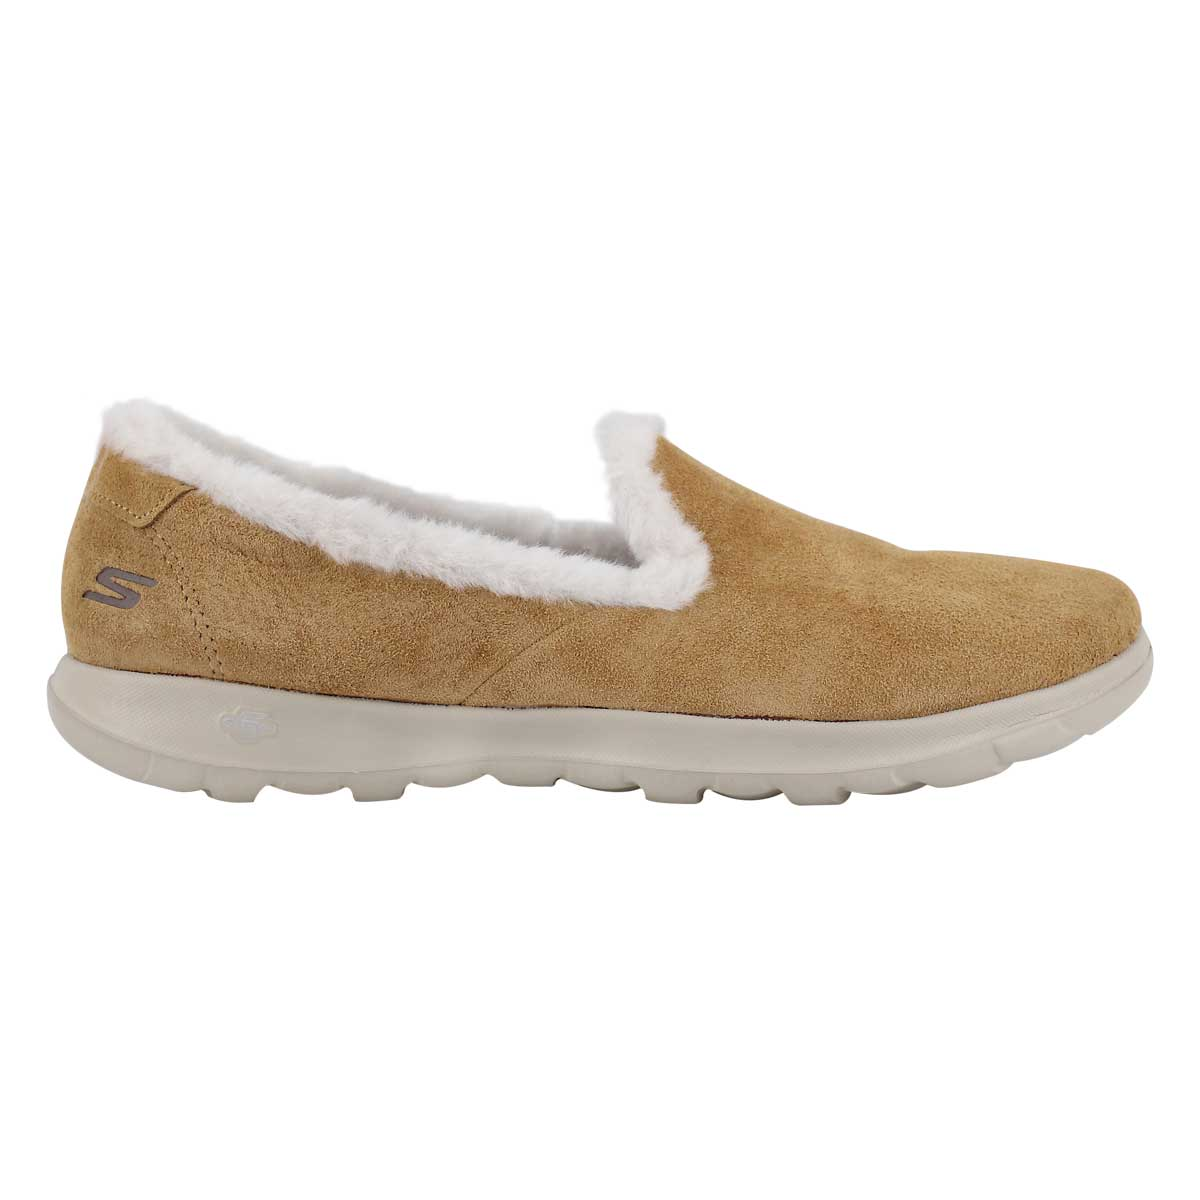 Lds GOwalk Lite ches slip on lined shoe